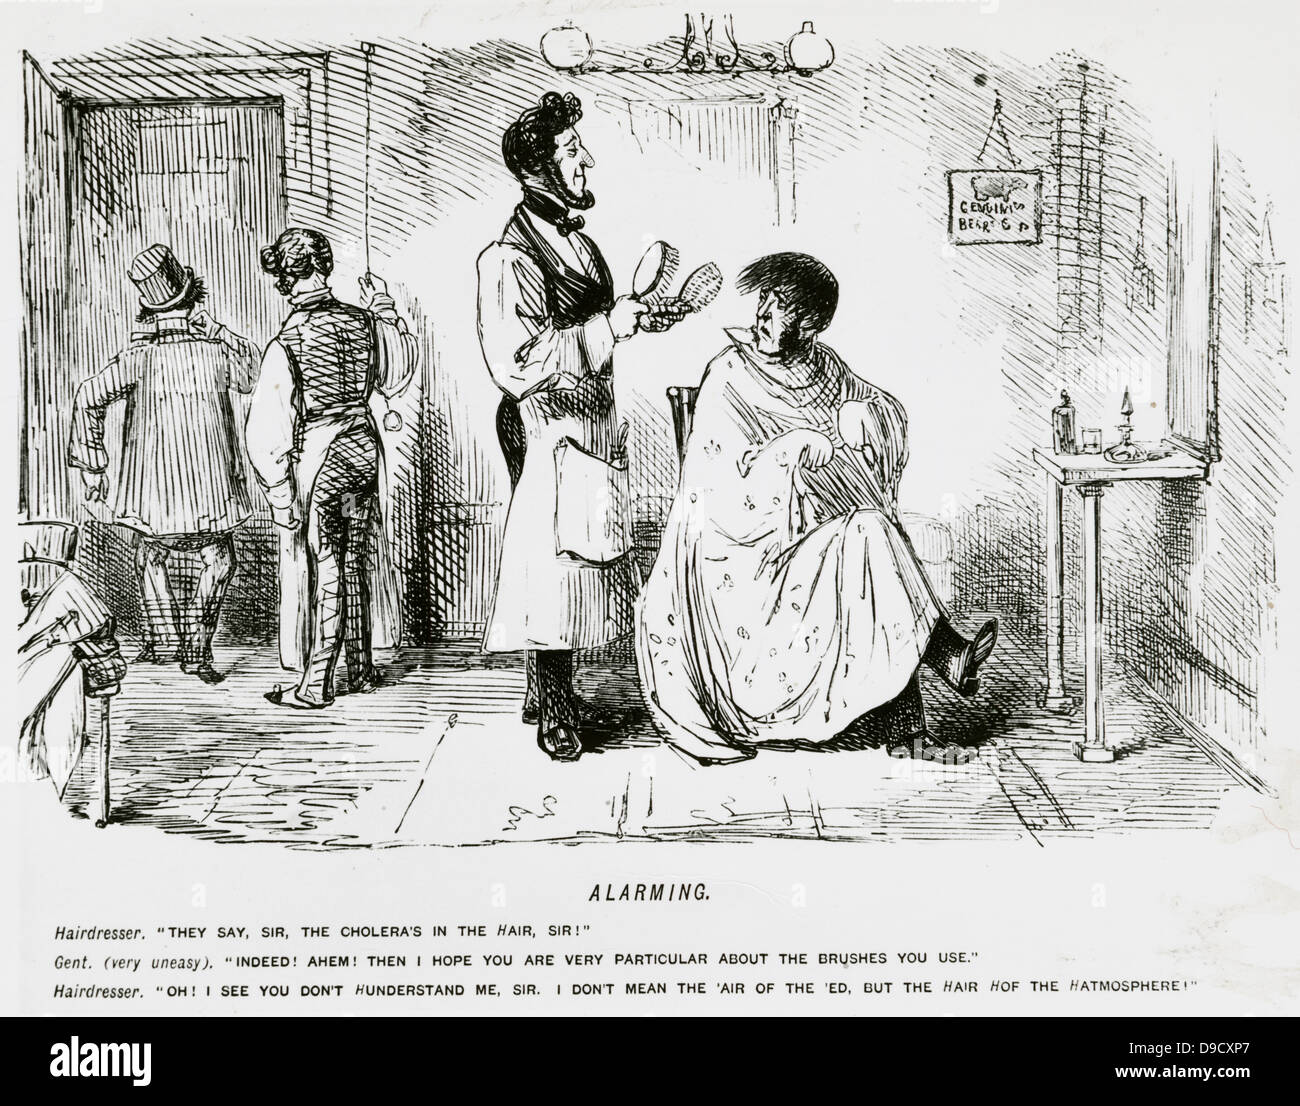 Barber alarming a client by suggesting that Cholera is in the Hair. Cartoon from Punch, London, c1849. - Stock Image